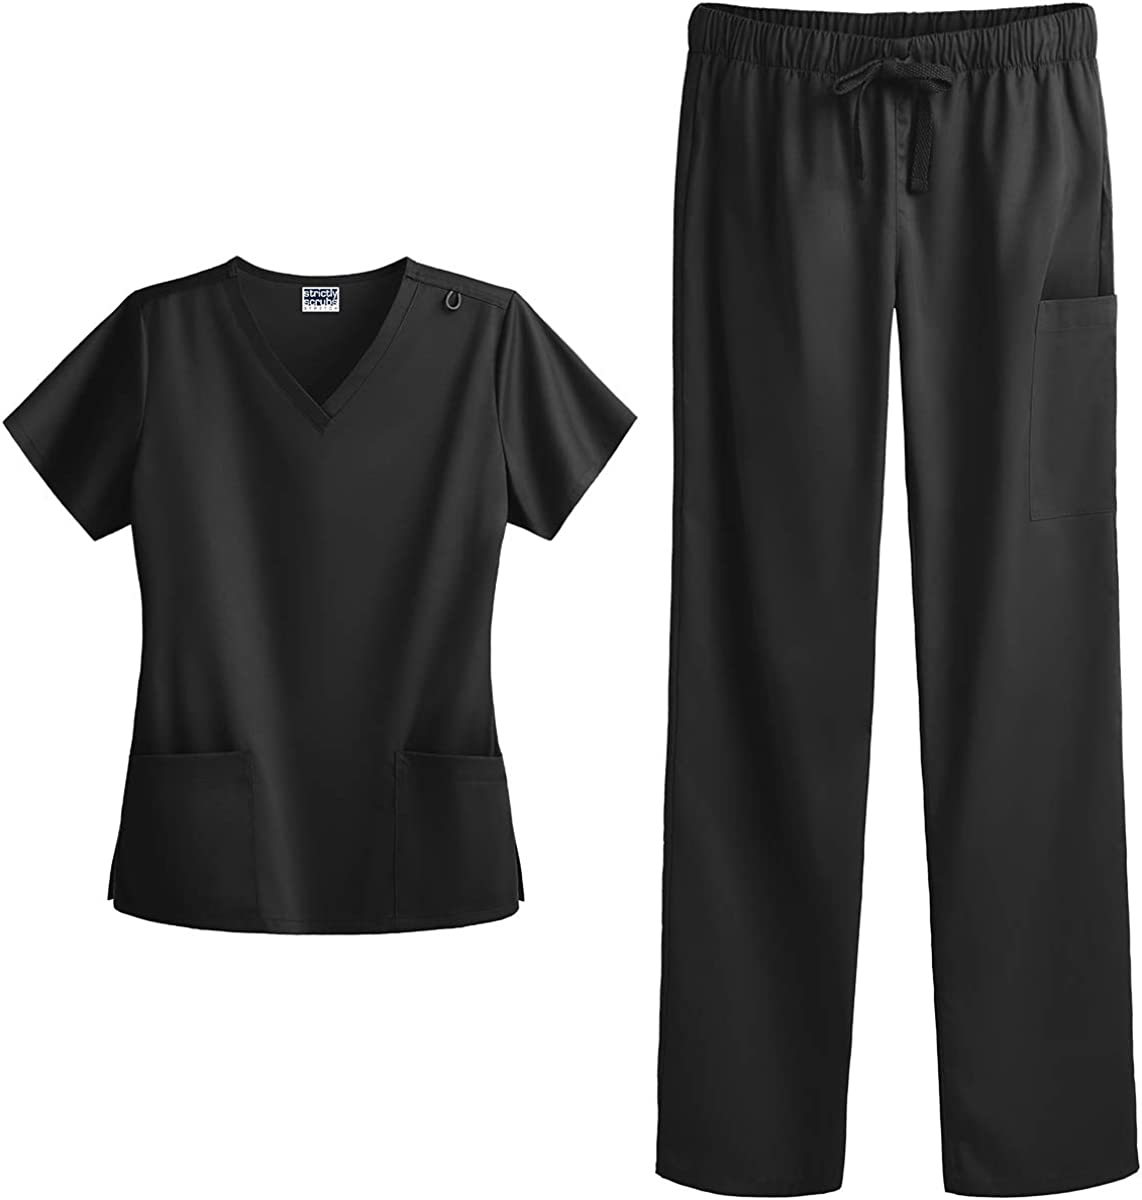 Strictly Scrubs Women's Four Way Stretch Scrub Set - Includes V-Neck Top and Pant: Clothing